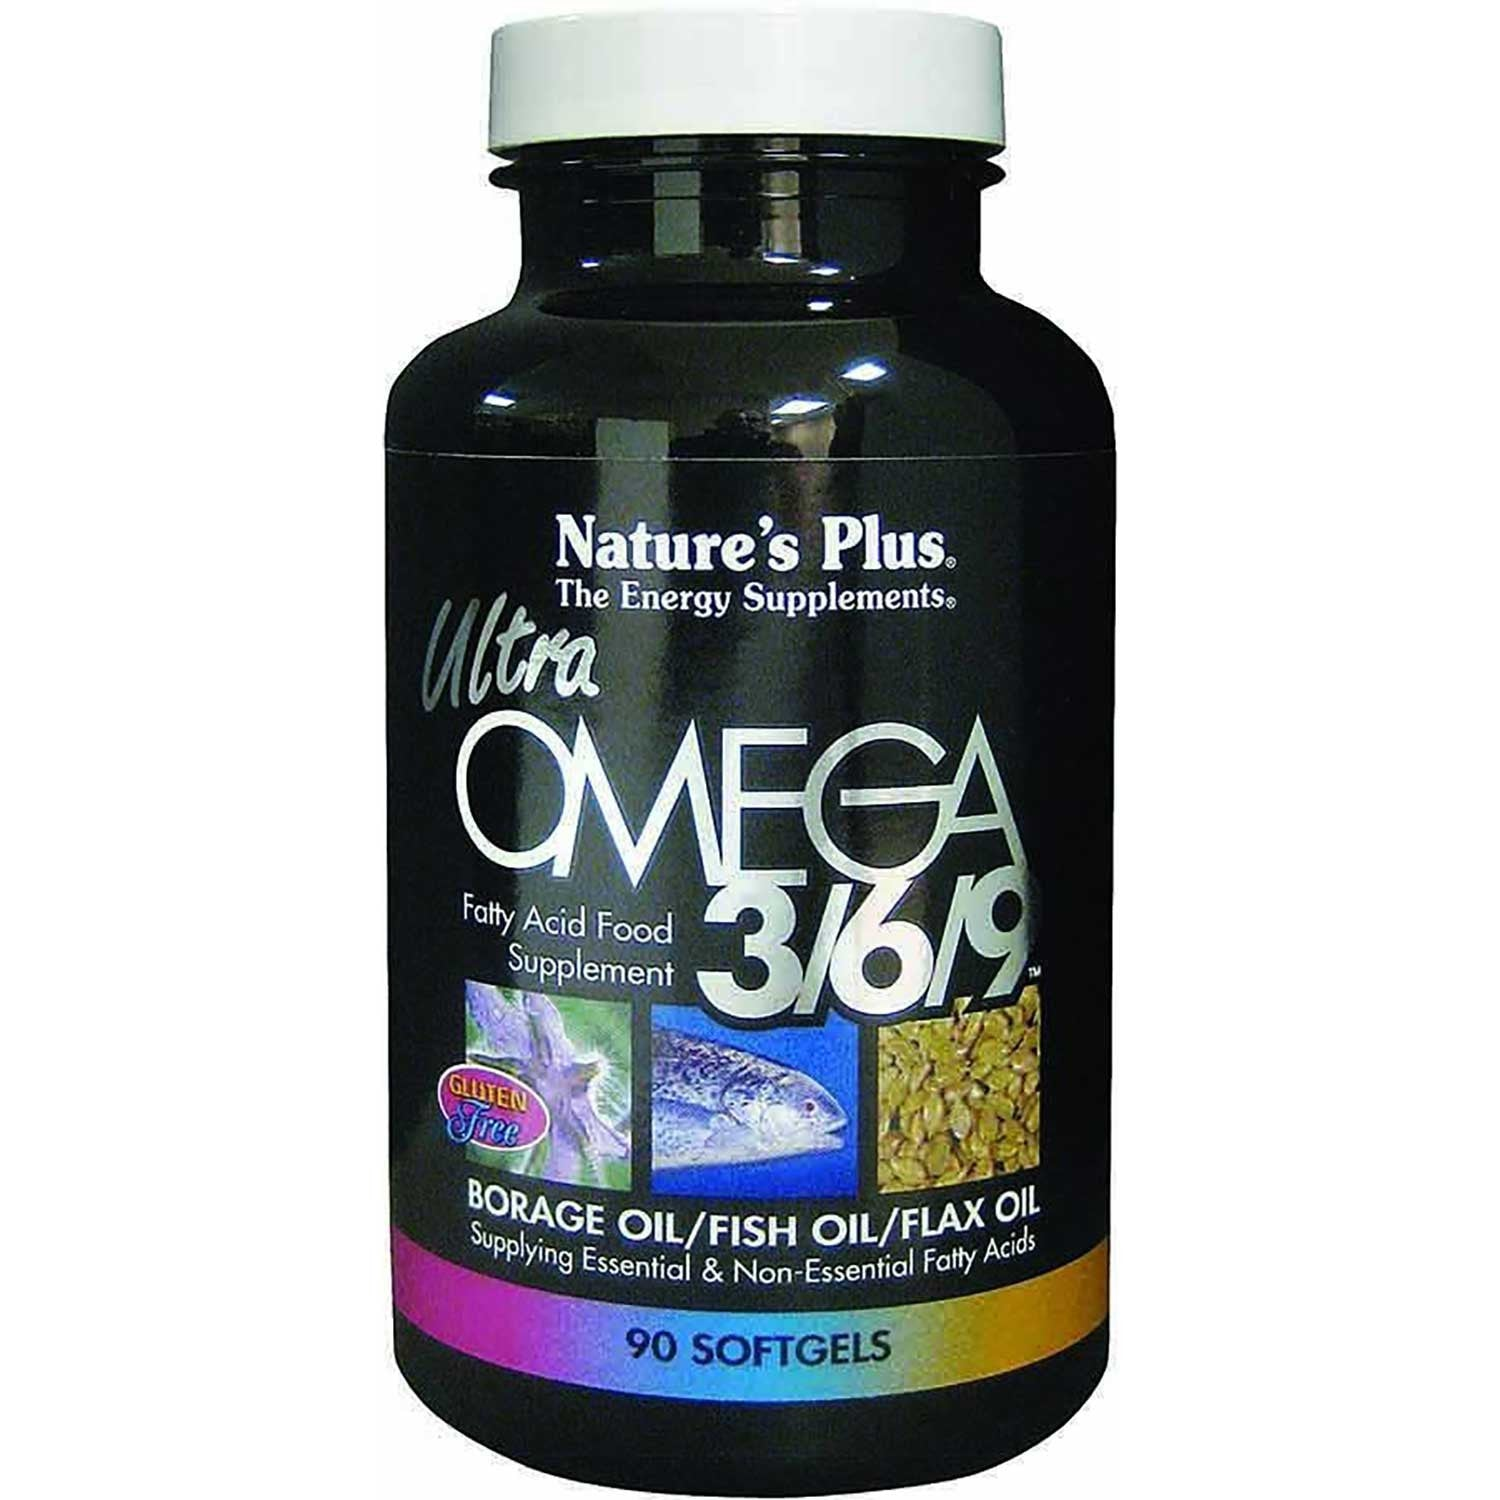 Natures Plus Ultra Omega 3/6/9 1200 mg, 90 sgls.-NaturesWisdom